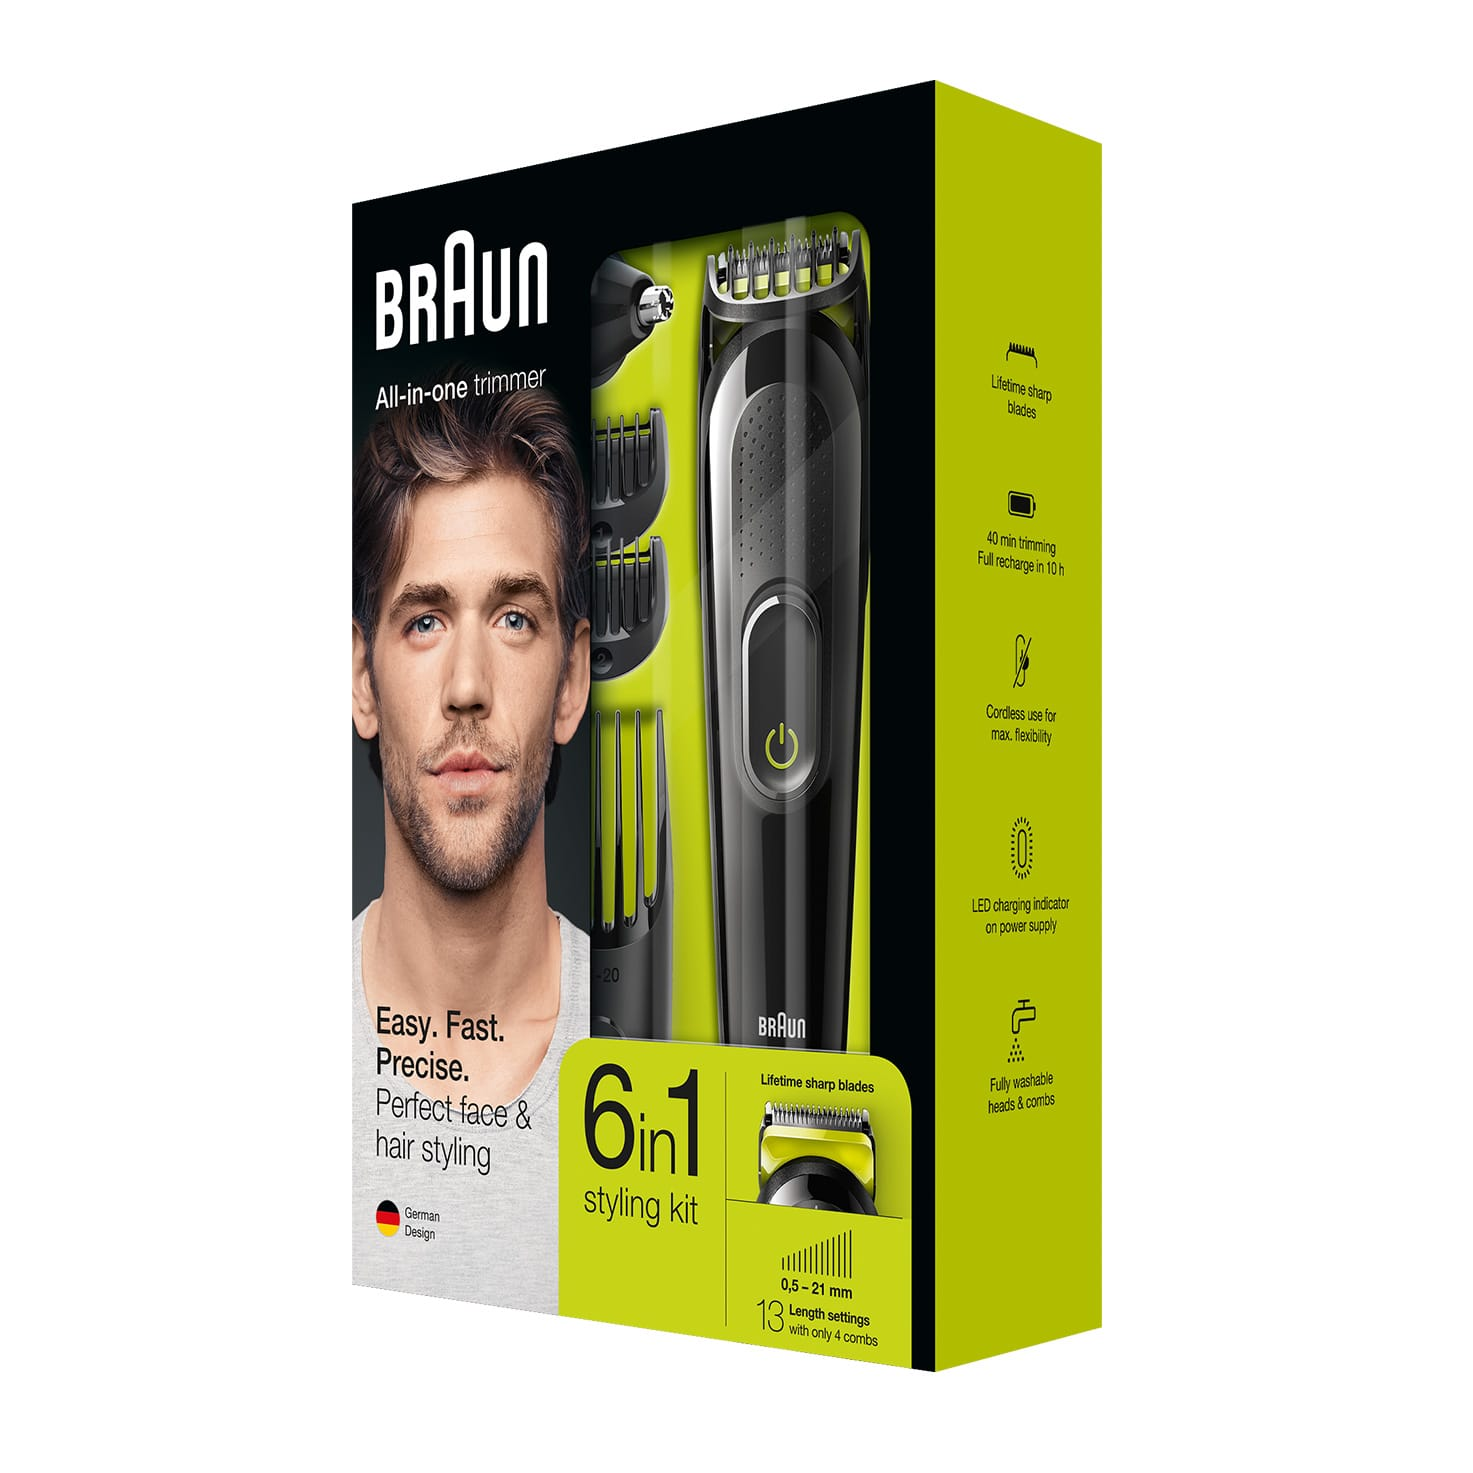 All-in-one trimmer MGK3021, 6-in-1 trimmer, 5 attachments black